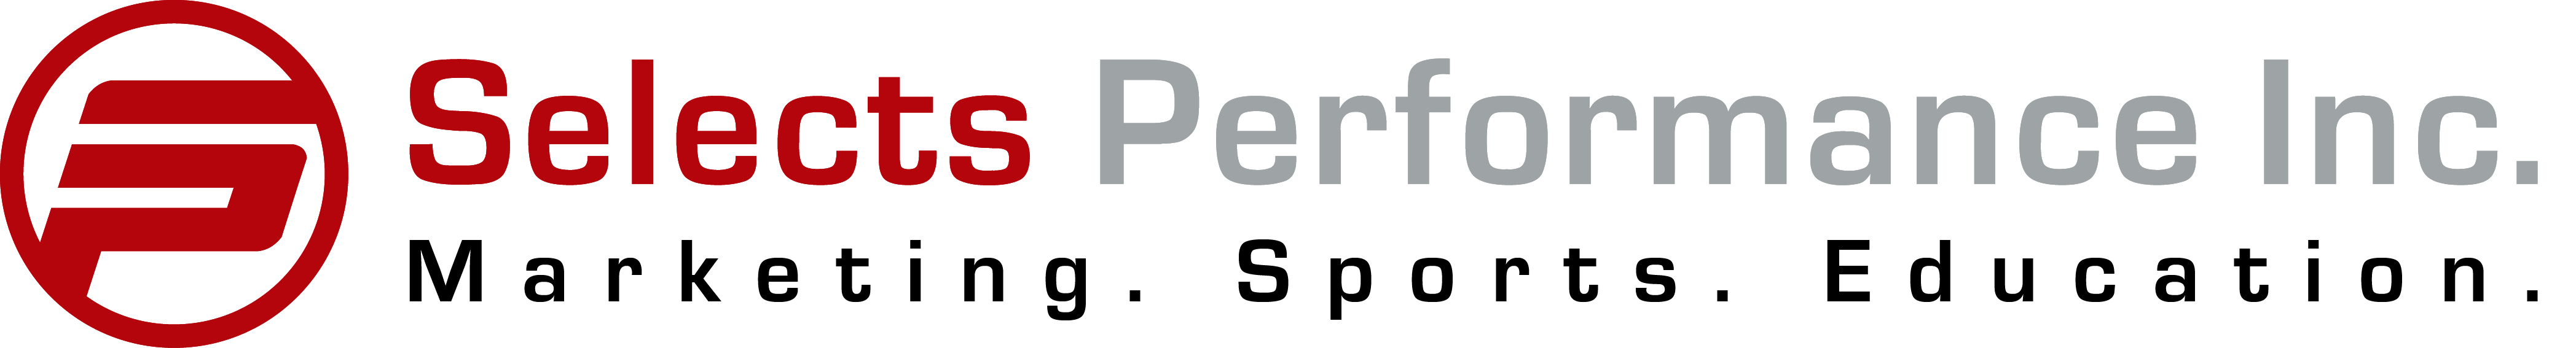 SELECTS PERFORMANCE INC - NEW